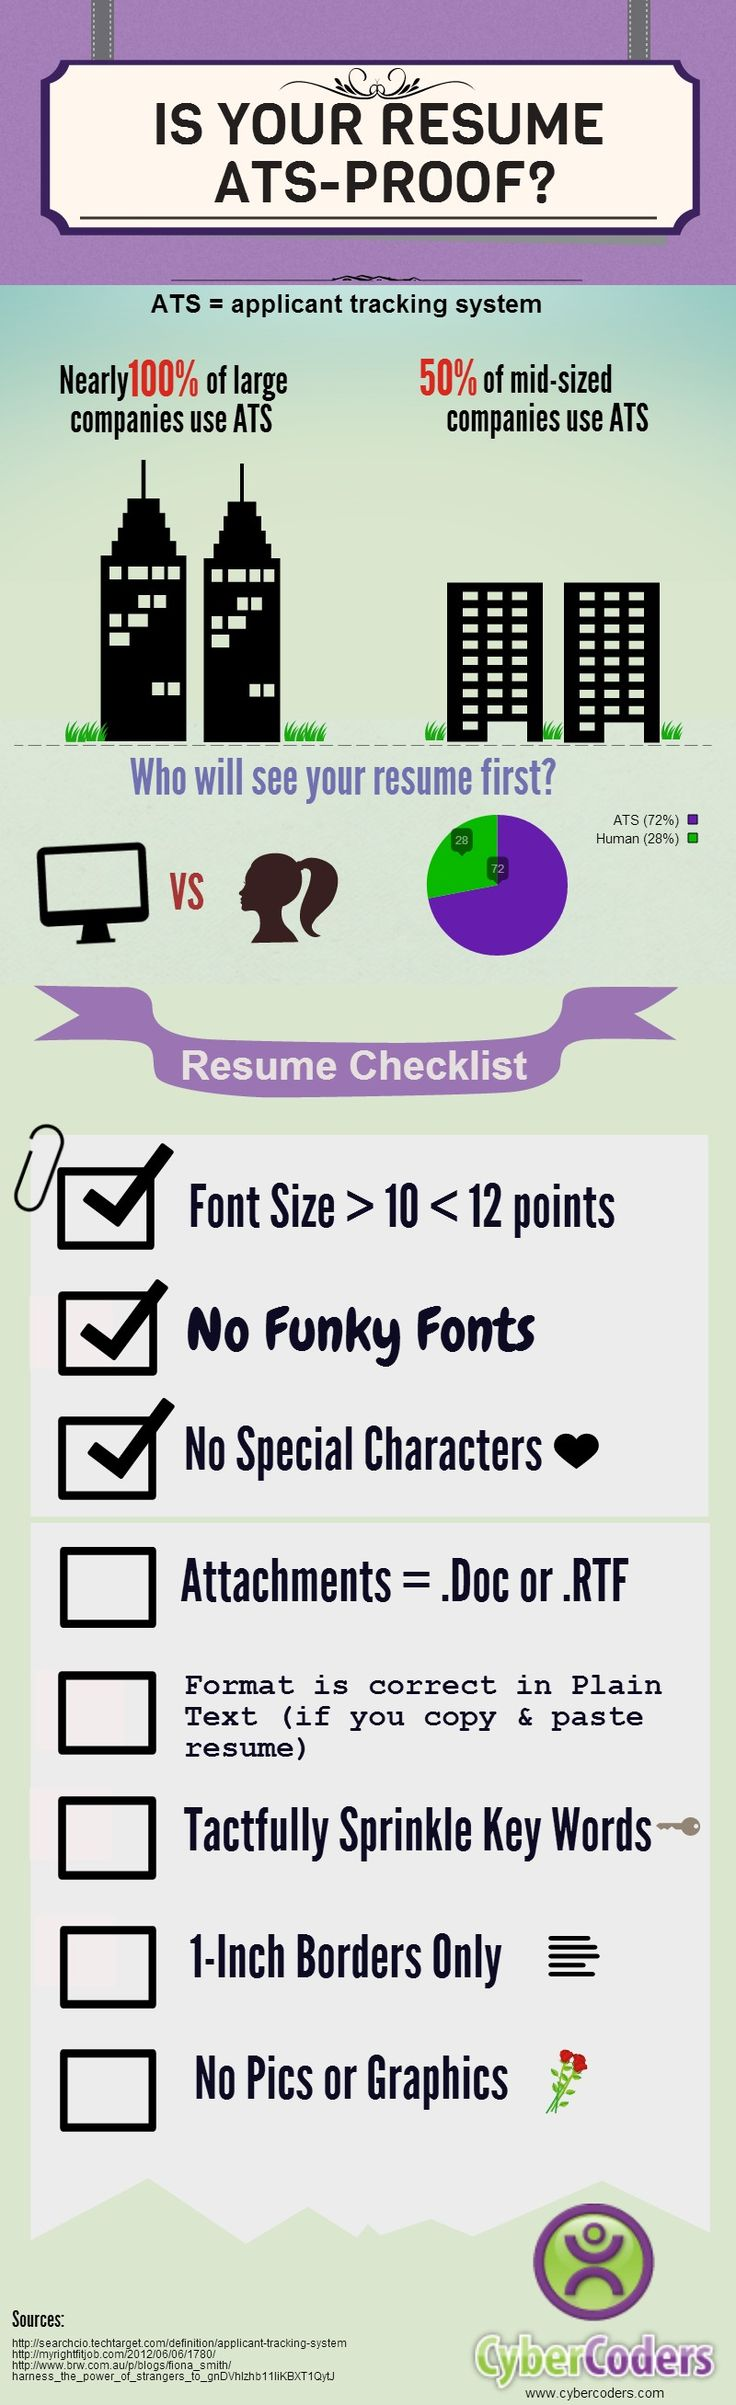 best ideas about resume fonts graphic designer 17 best ideas about resume fonts graphic designer resume resume design and resume layout